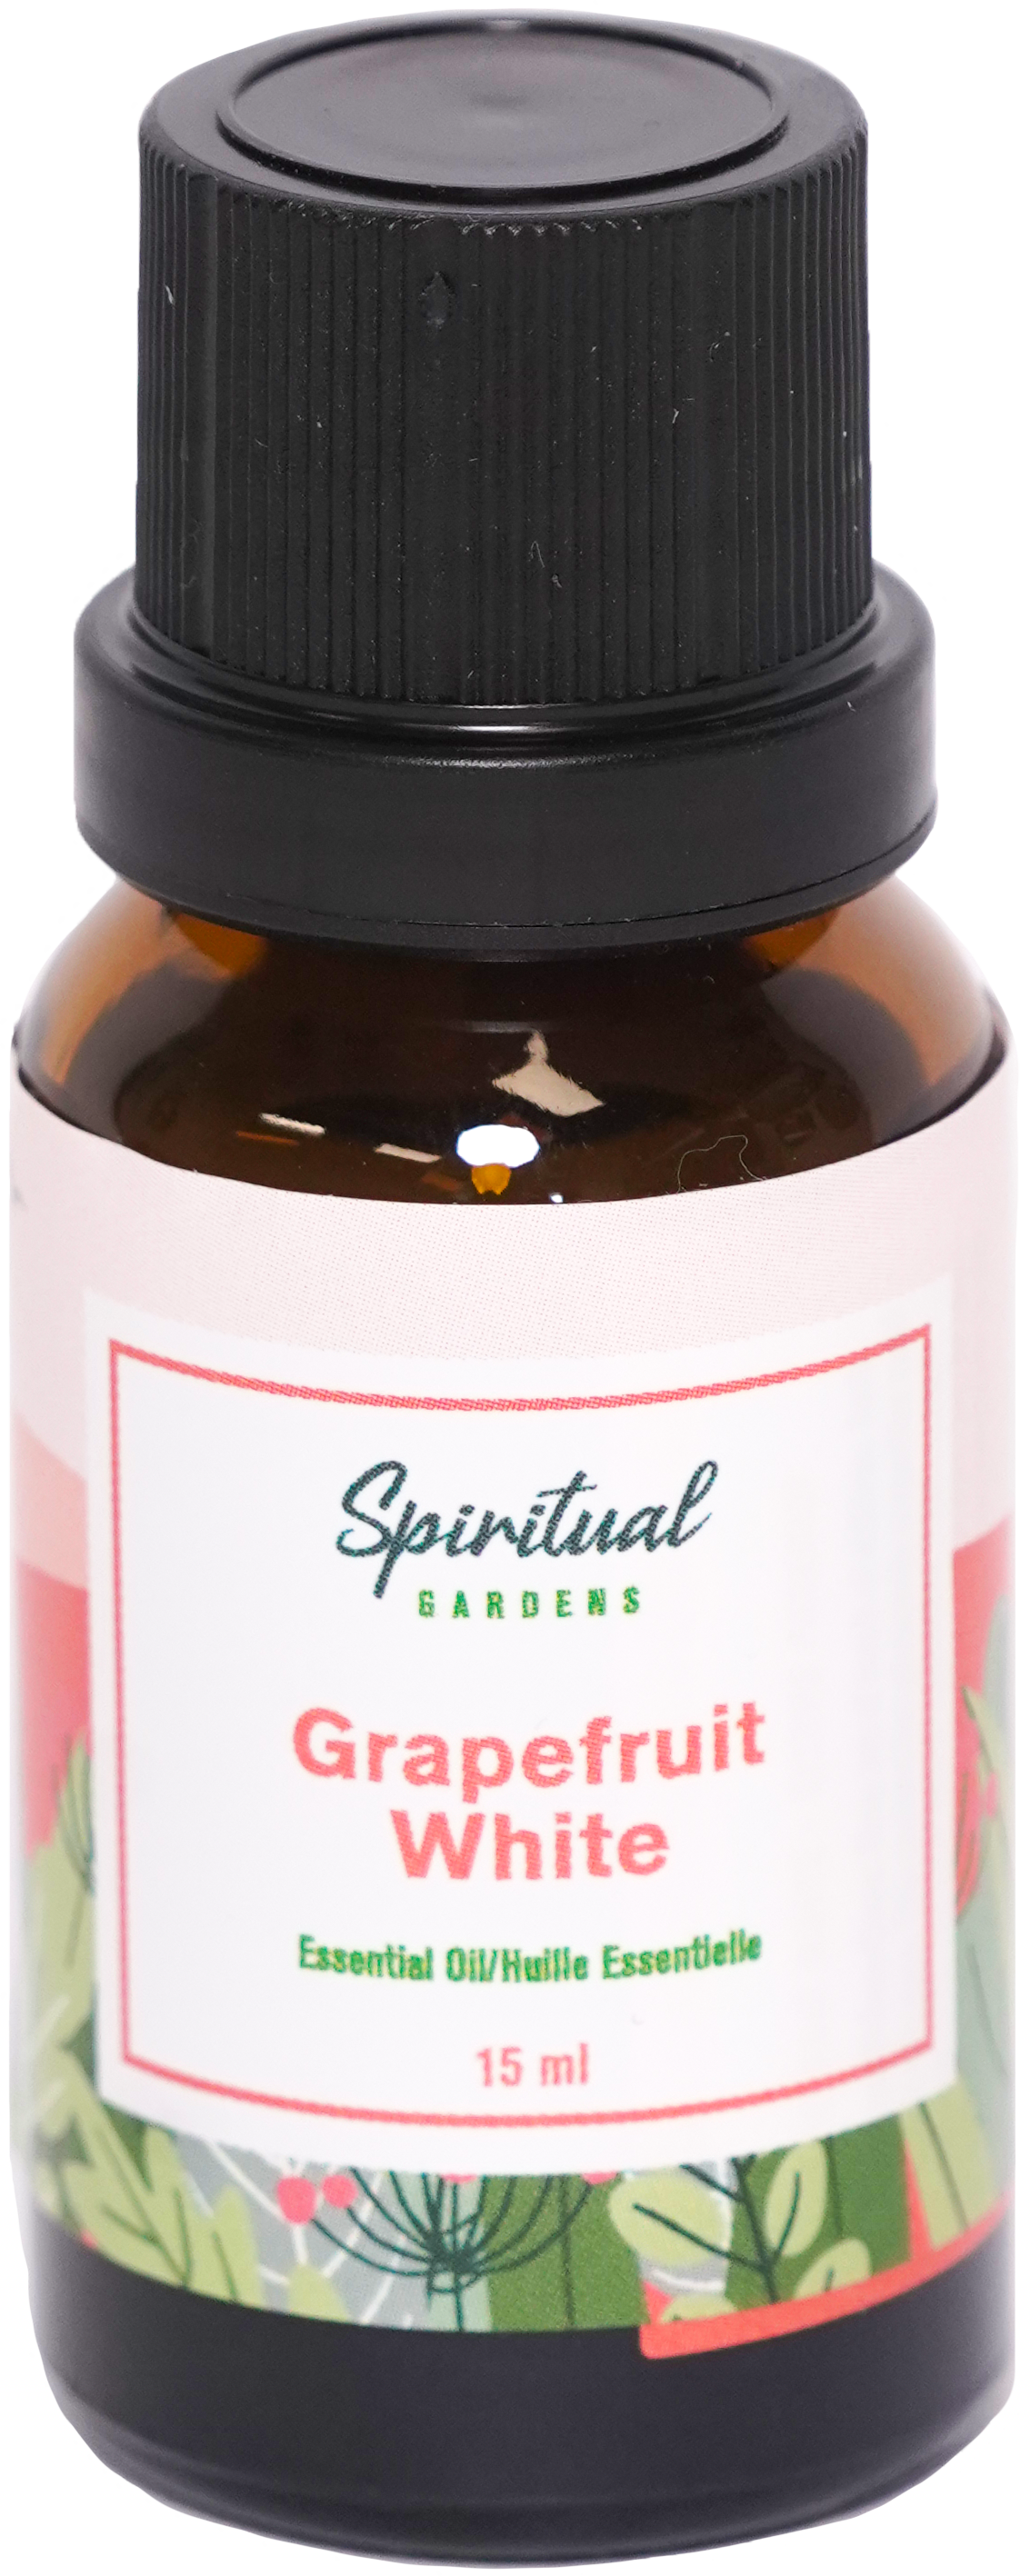 Essential Oil - Grapefruit White